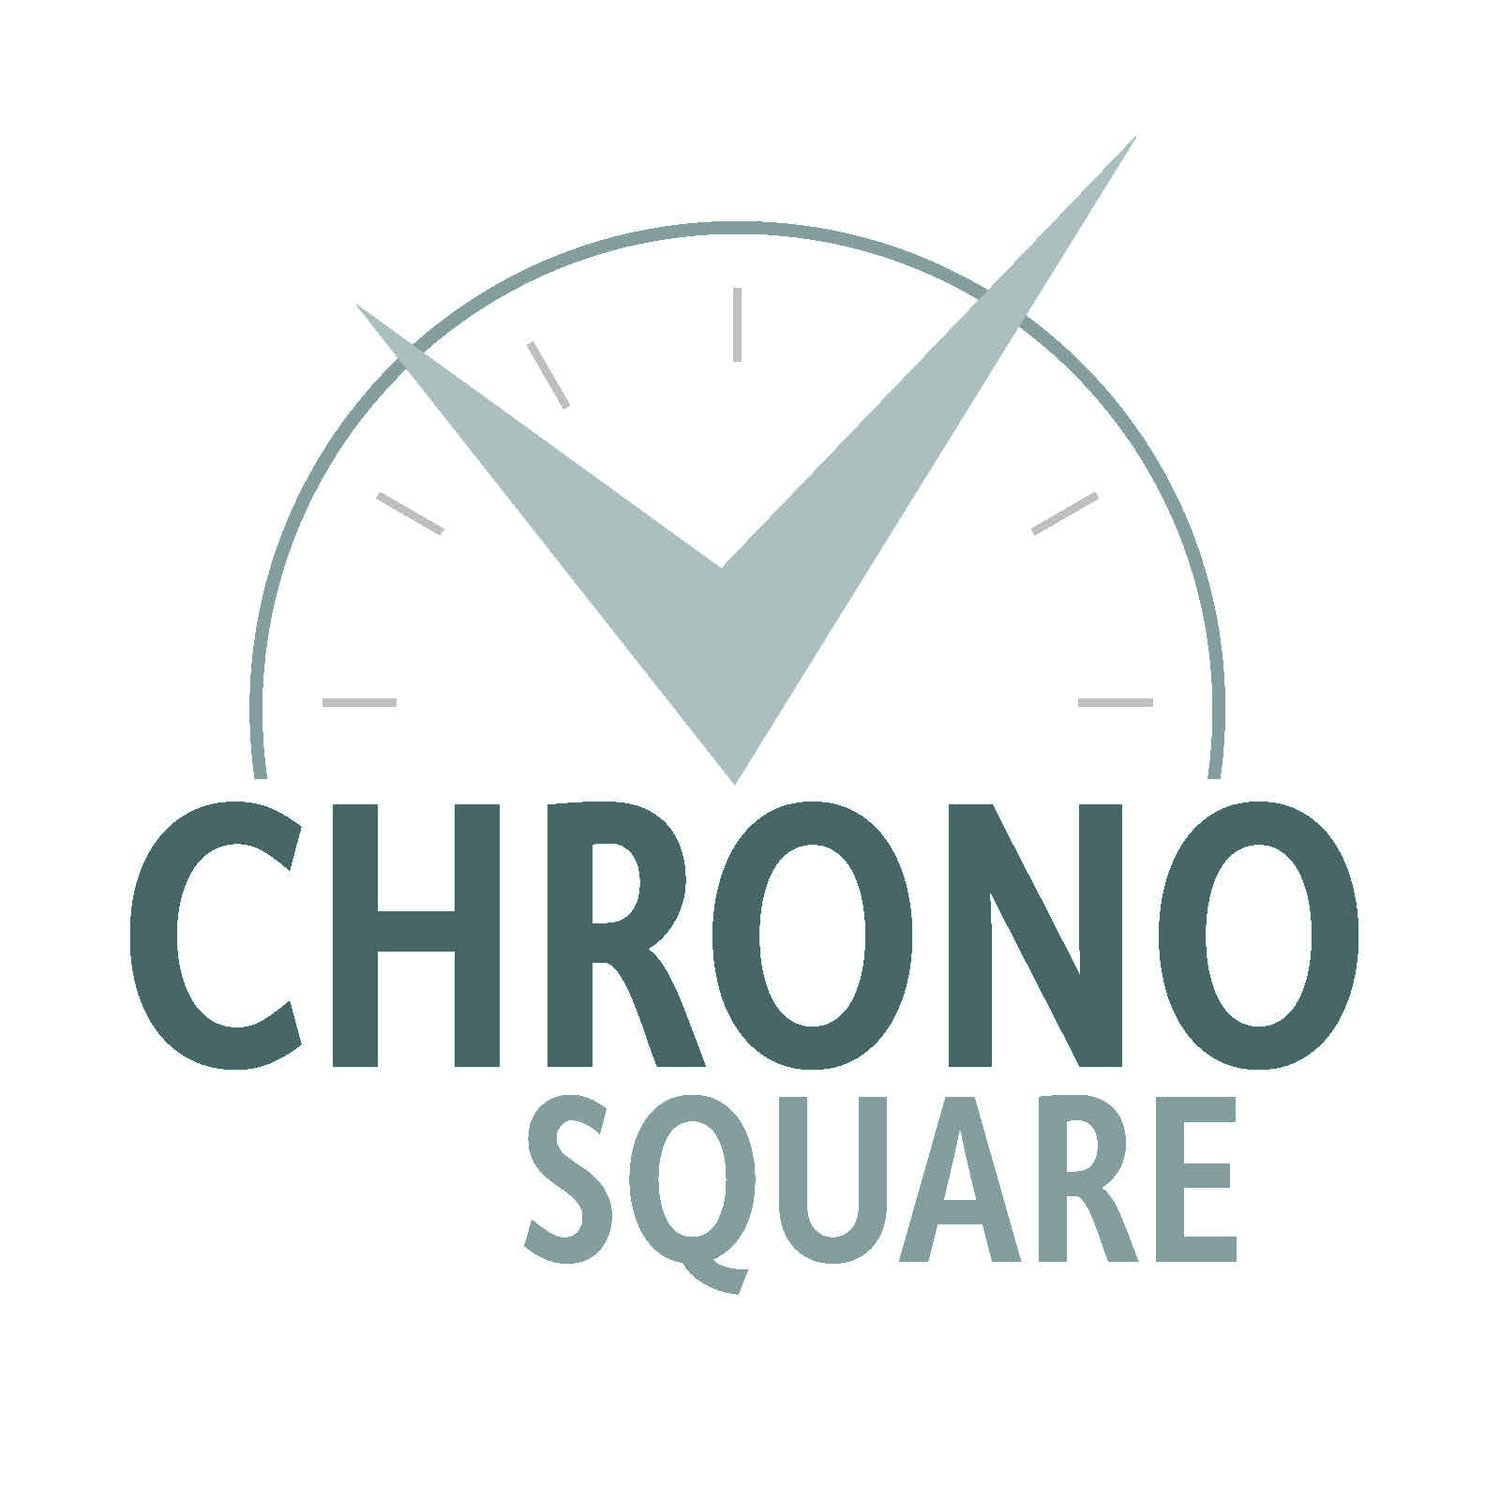 Chrono Square